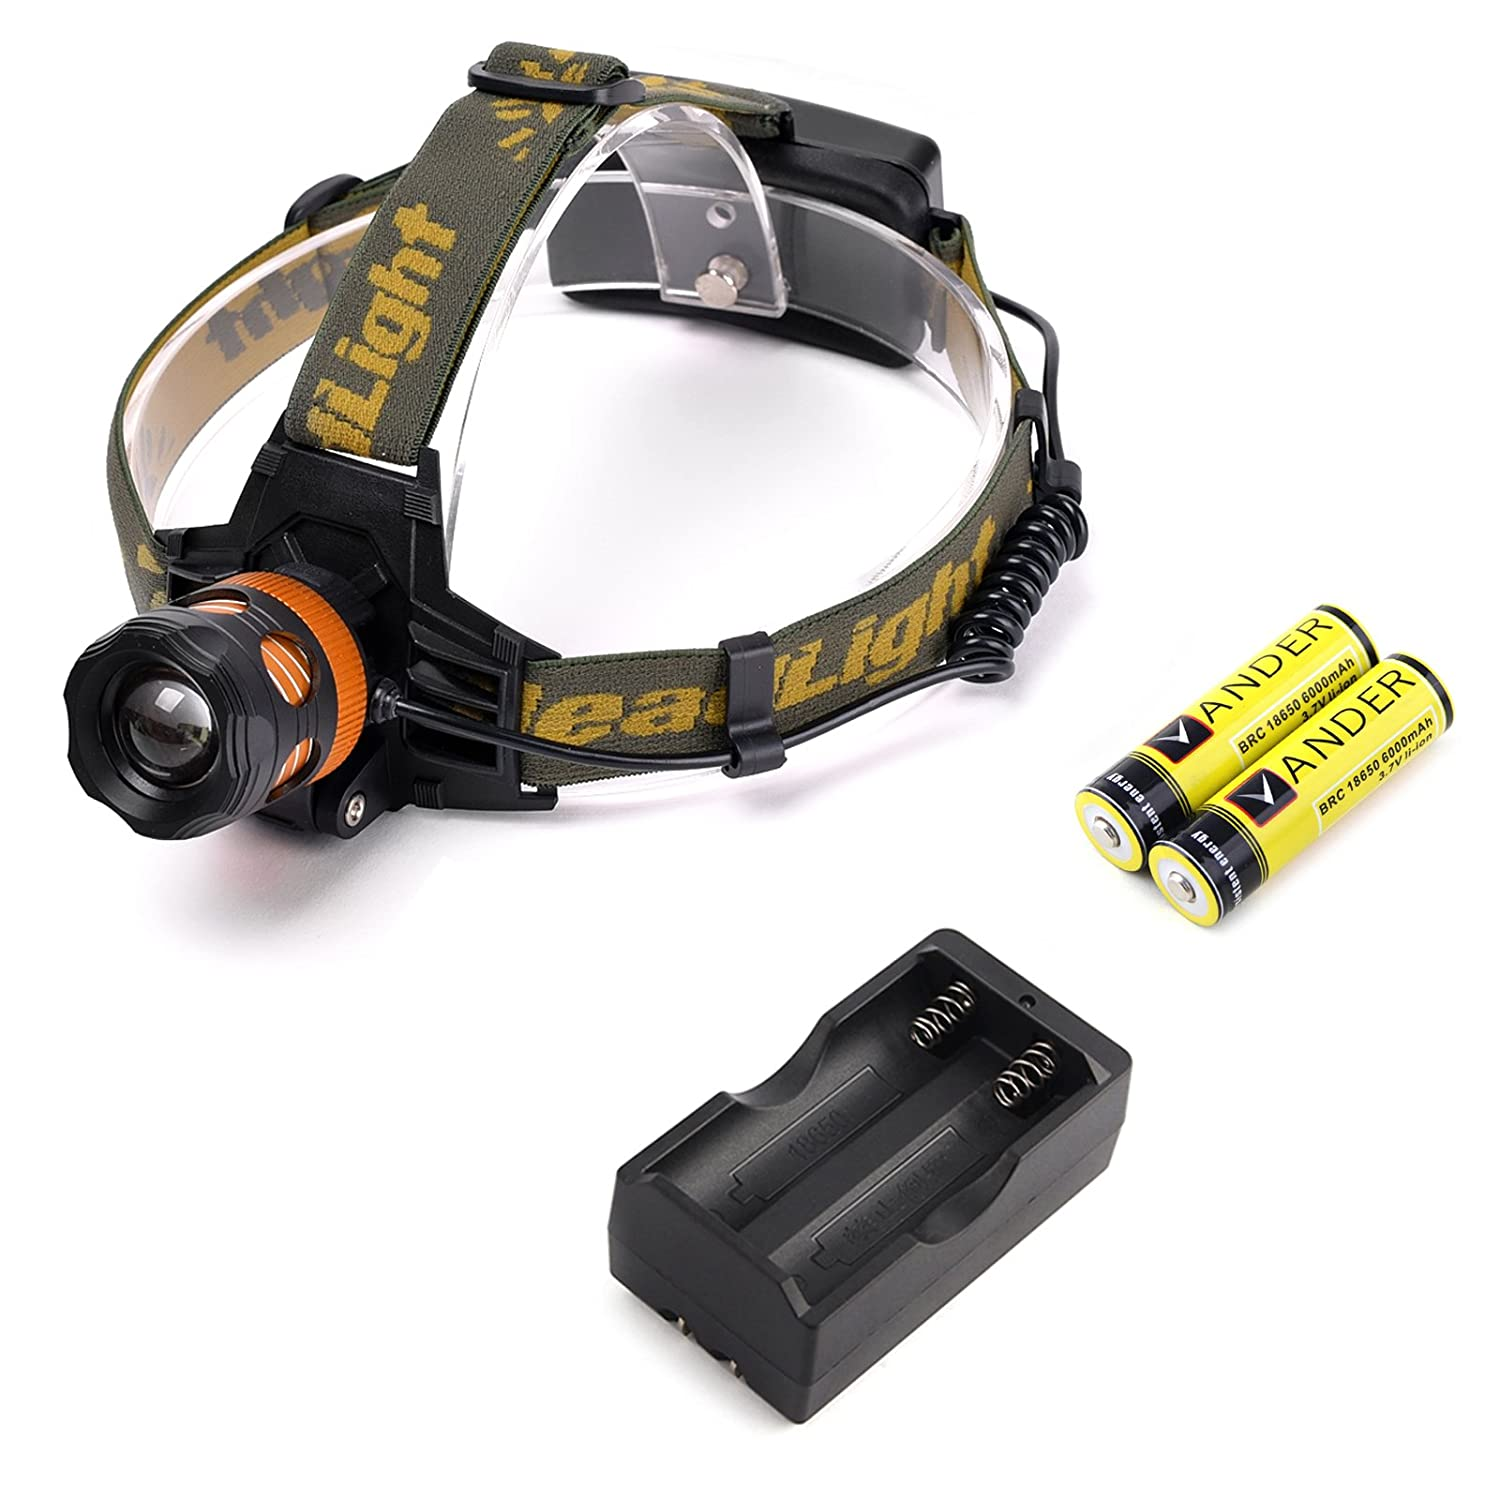 Free Shipping Vander 2000 Lumens Led Headlamp Zoomable 3